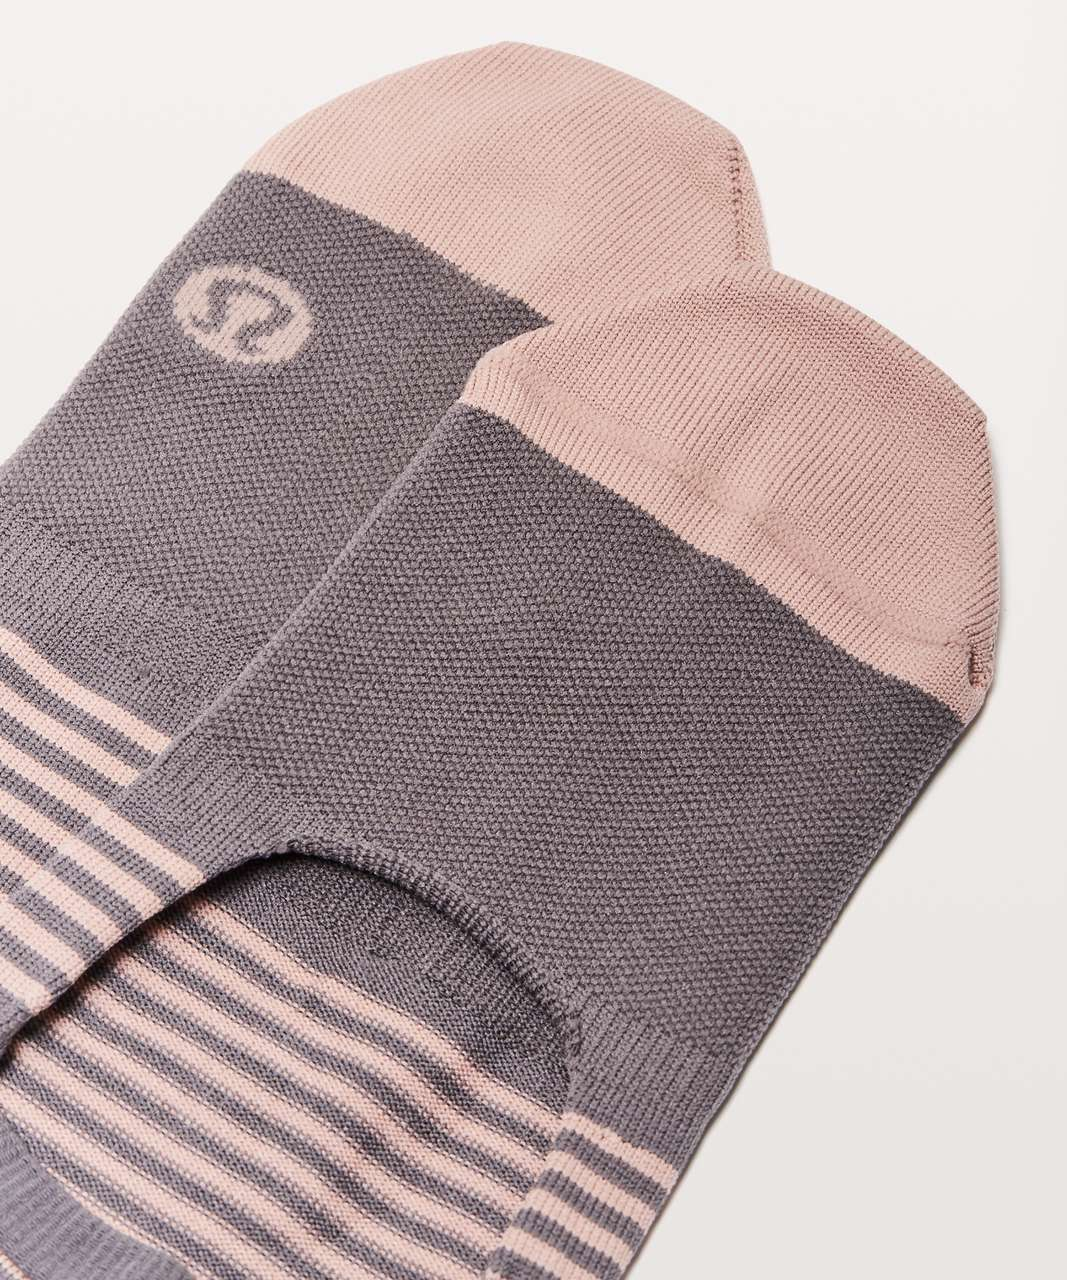 Lululemon Secret Sock - Magnum / Light Quicksand / Dusty Dawn